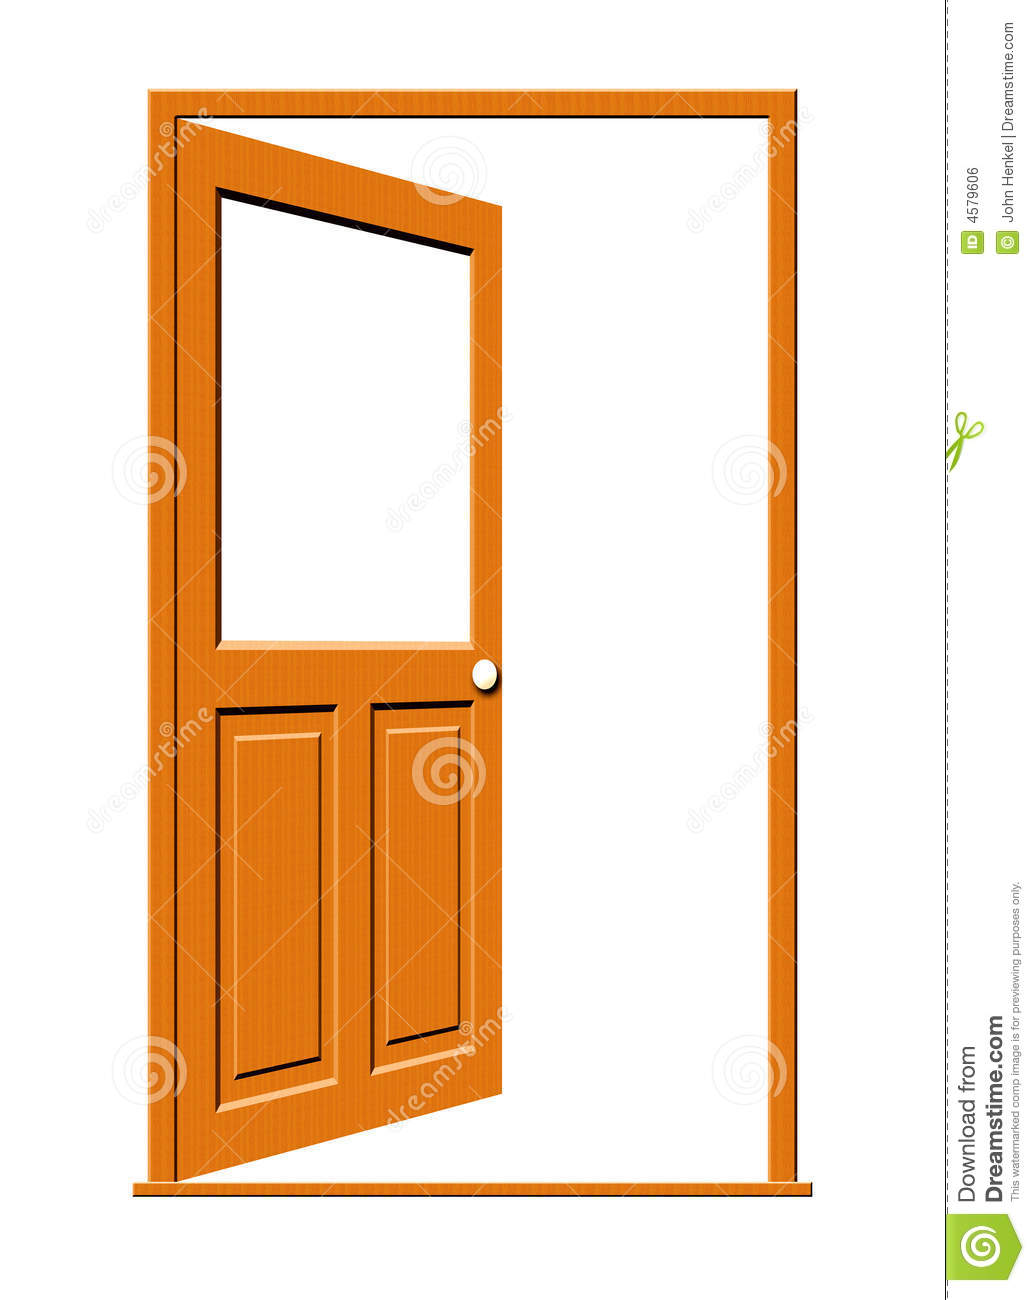 Wooden door clipart clipart panda free clipart images for Wood doors with windows